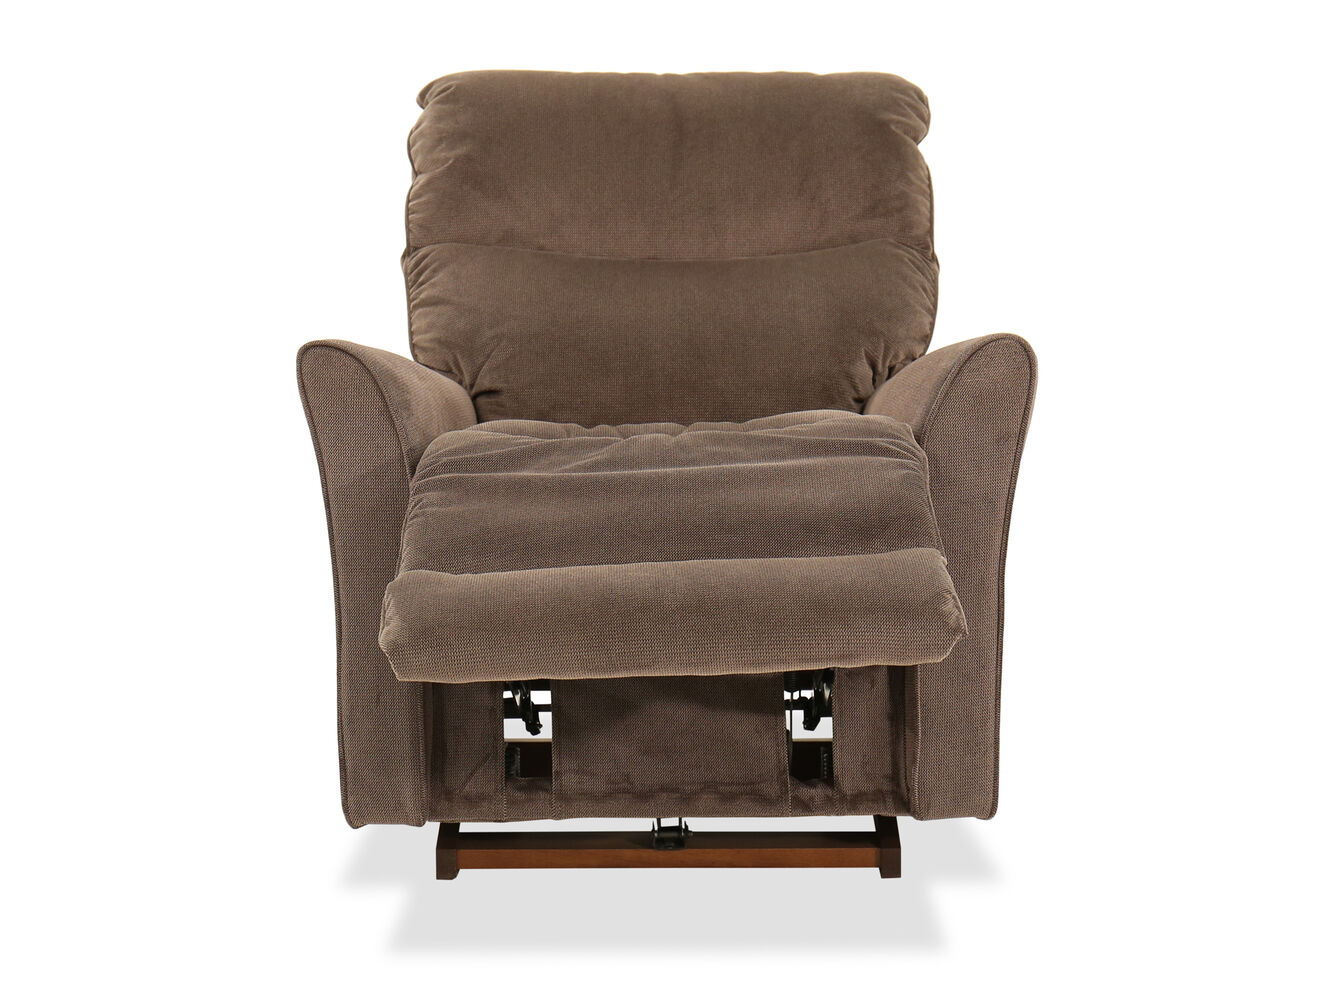 recliners recliner white stratolounger chairs chair small for dark charming your perfect brown rocker living leather room